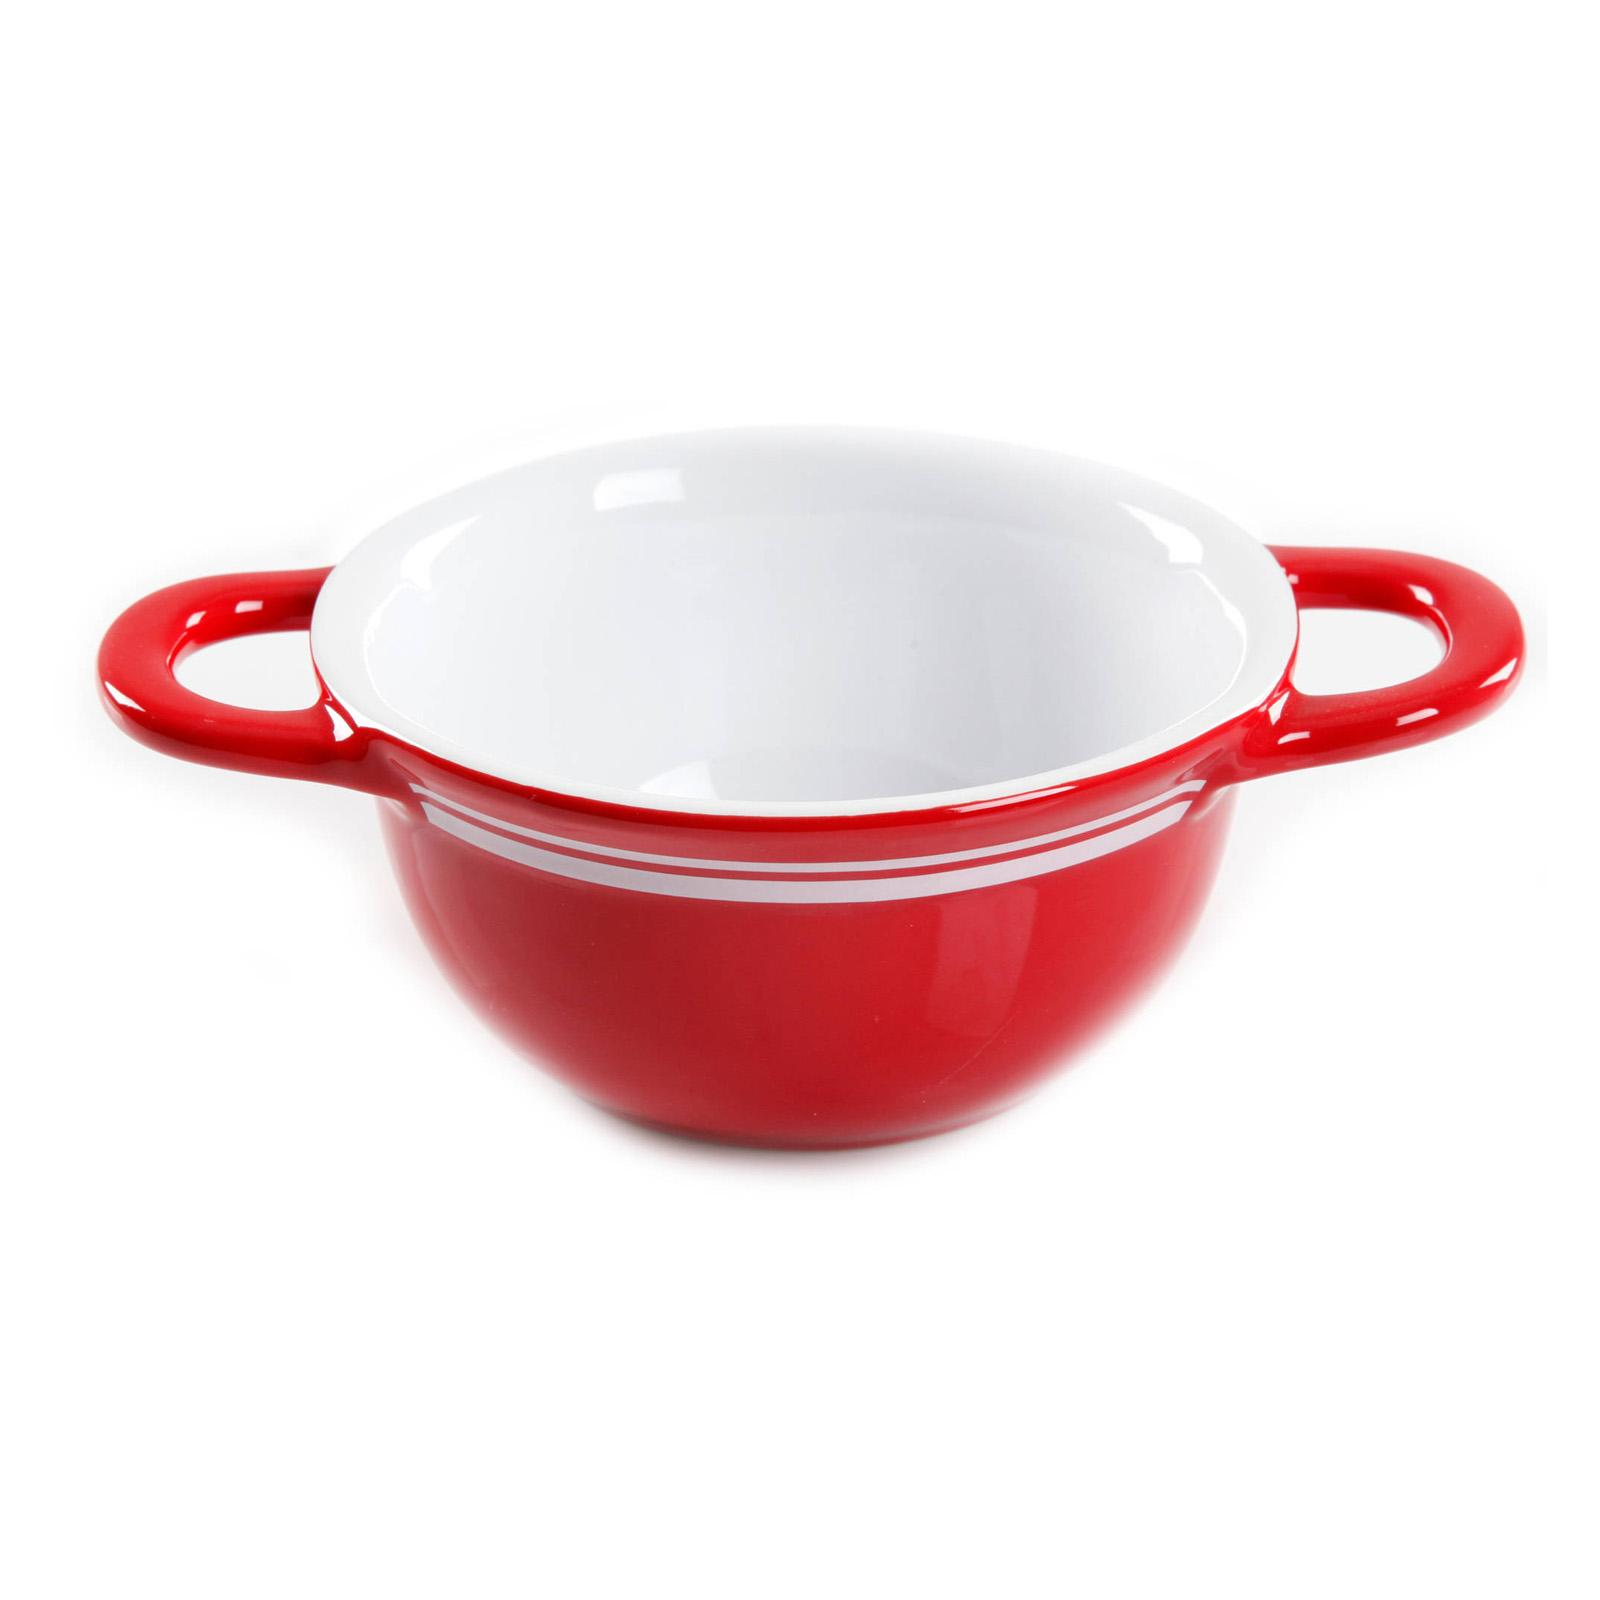 Gibson Home Just Dine Bistro Edge Soup Bowl - Set of 2 Red - 45F87CCAD68E4A72AB929D8CEBC0B8CB